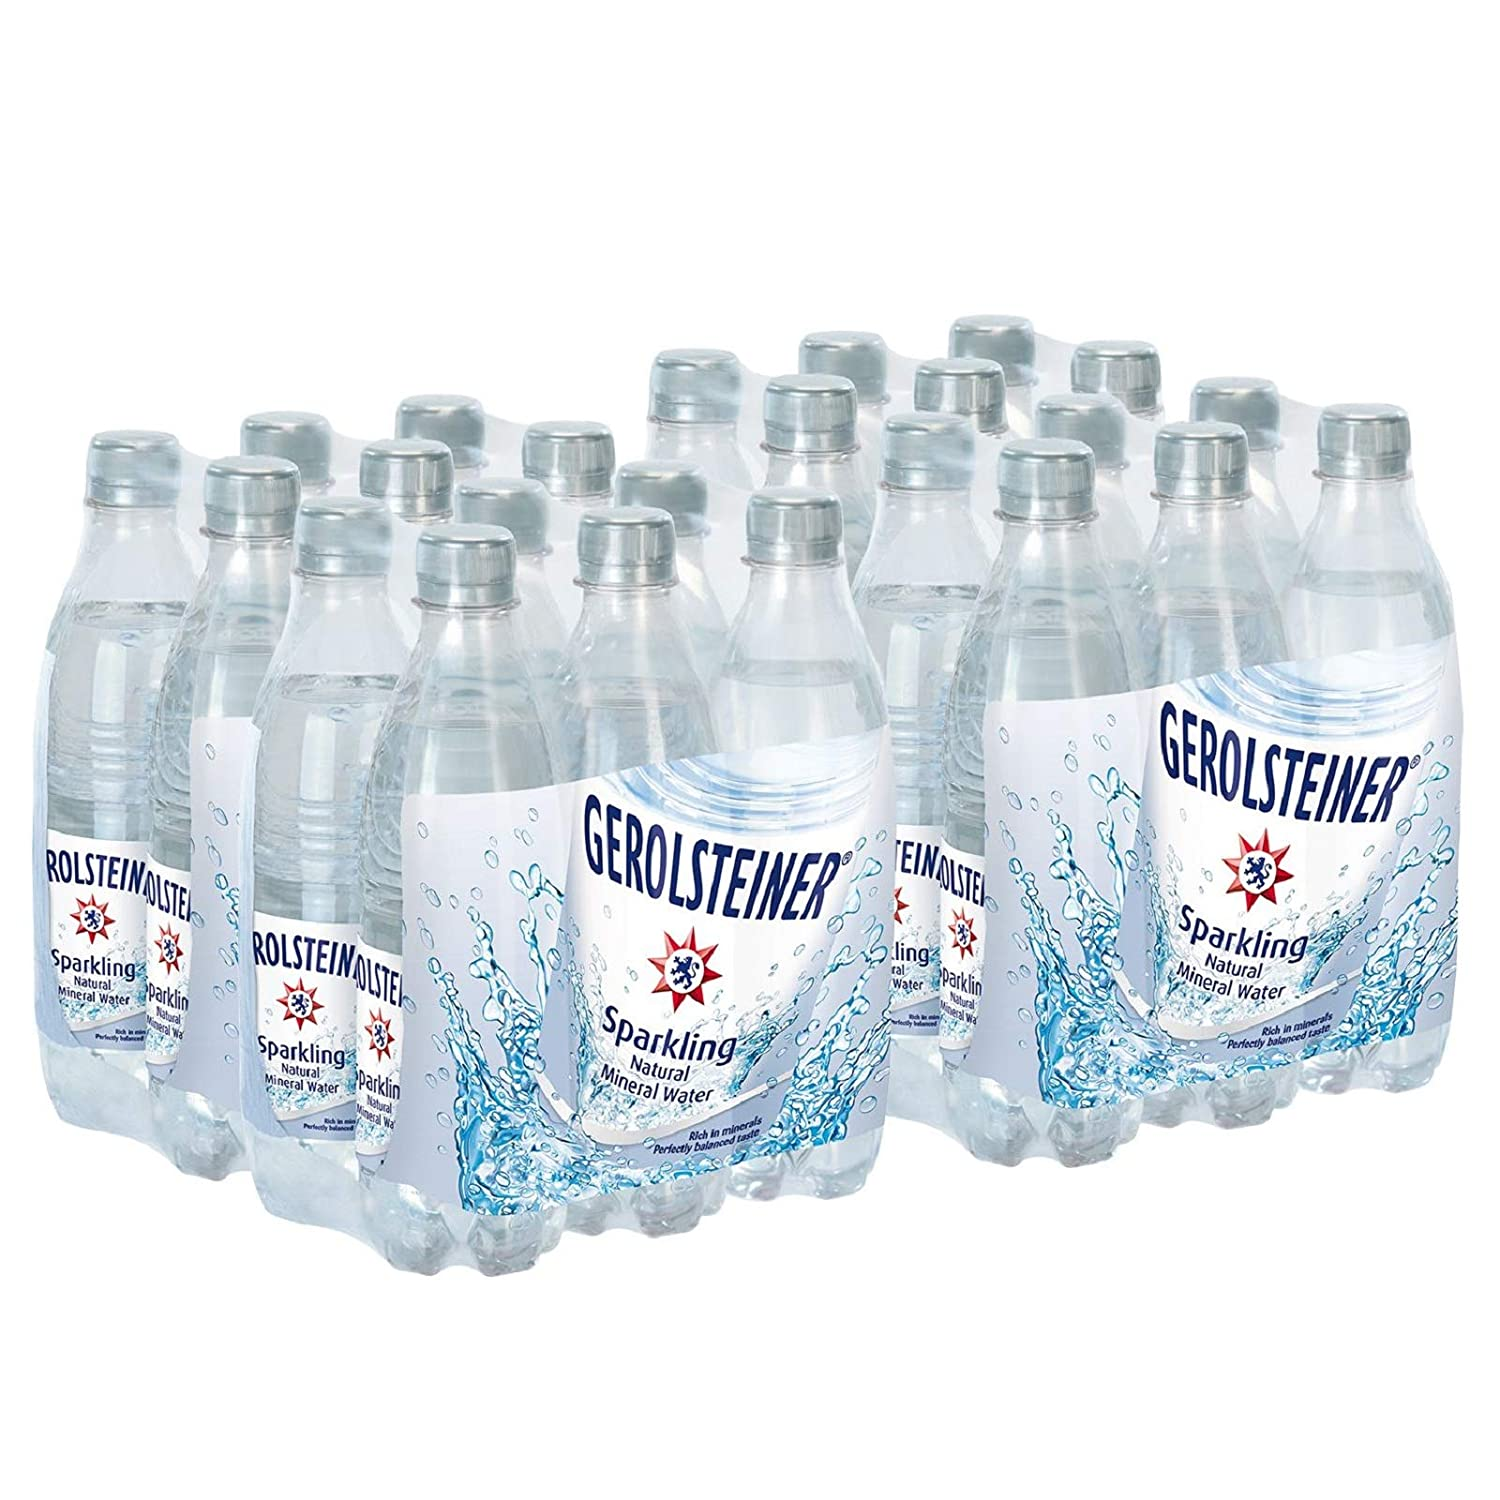 Gerolsteiner Naturally Sparkling Mineral Water,16.9oz, 6 Per Pack (Pack of 4)